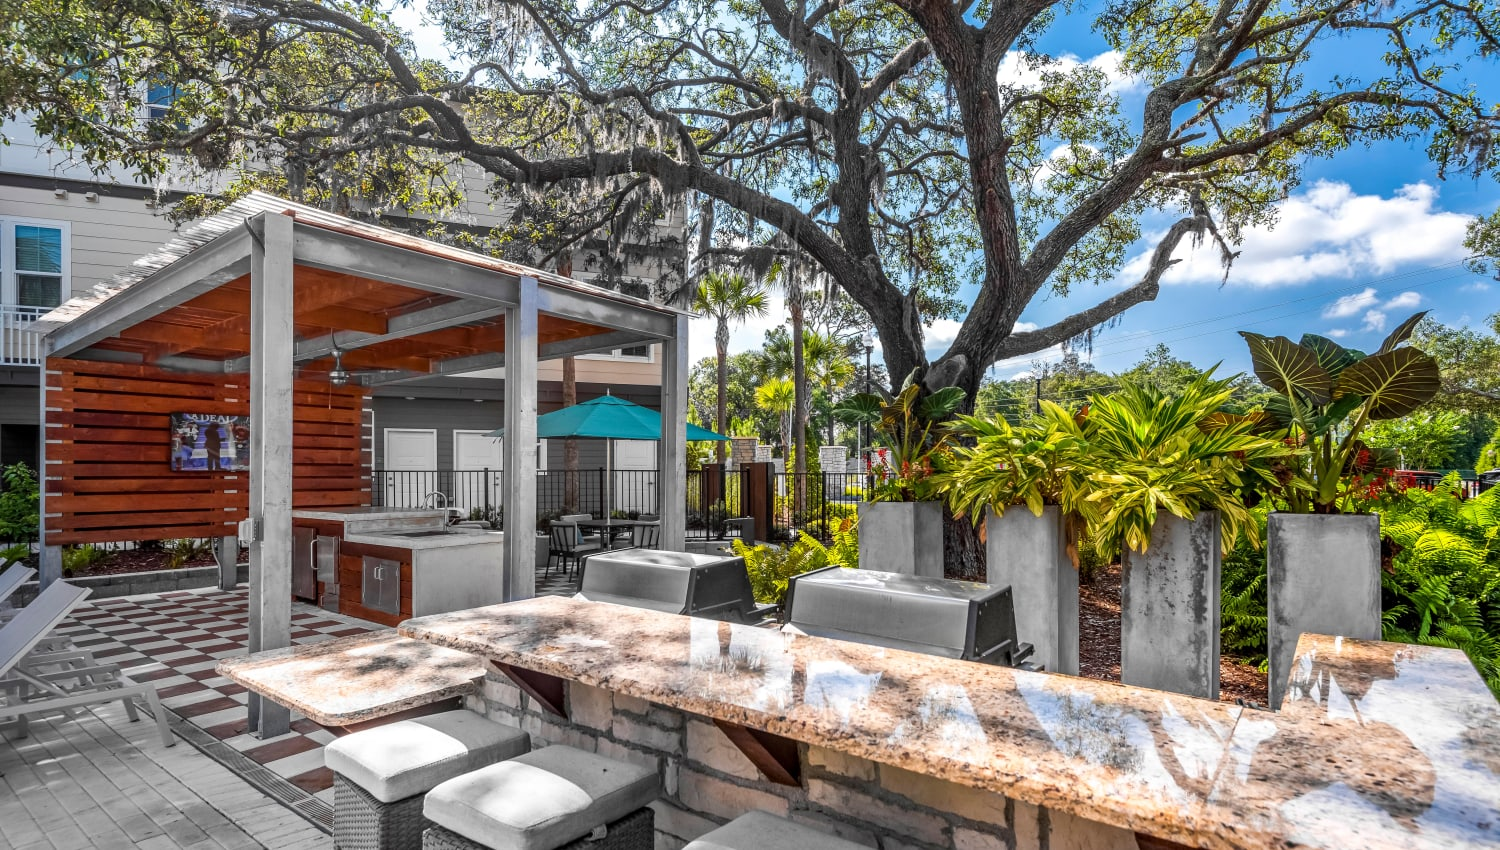 Barbecue area with gas grills at Canopy at Citrus Park in Tampa, Florida